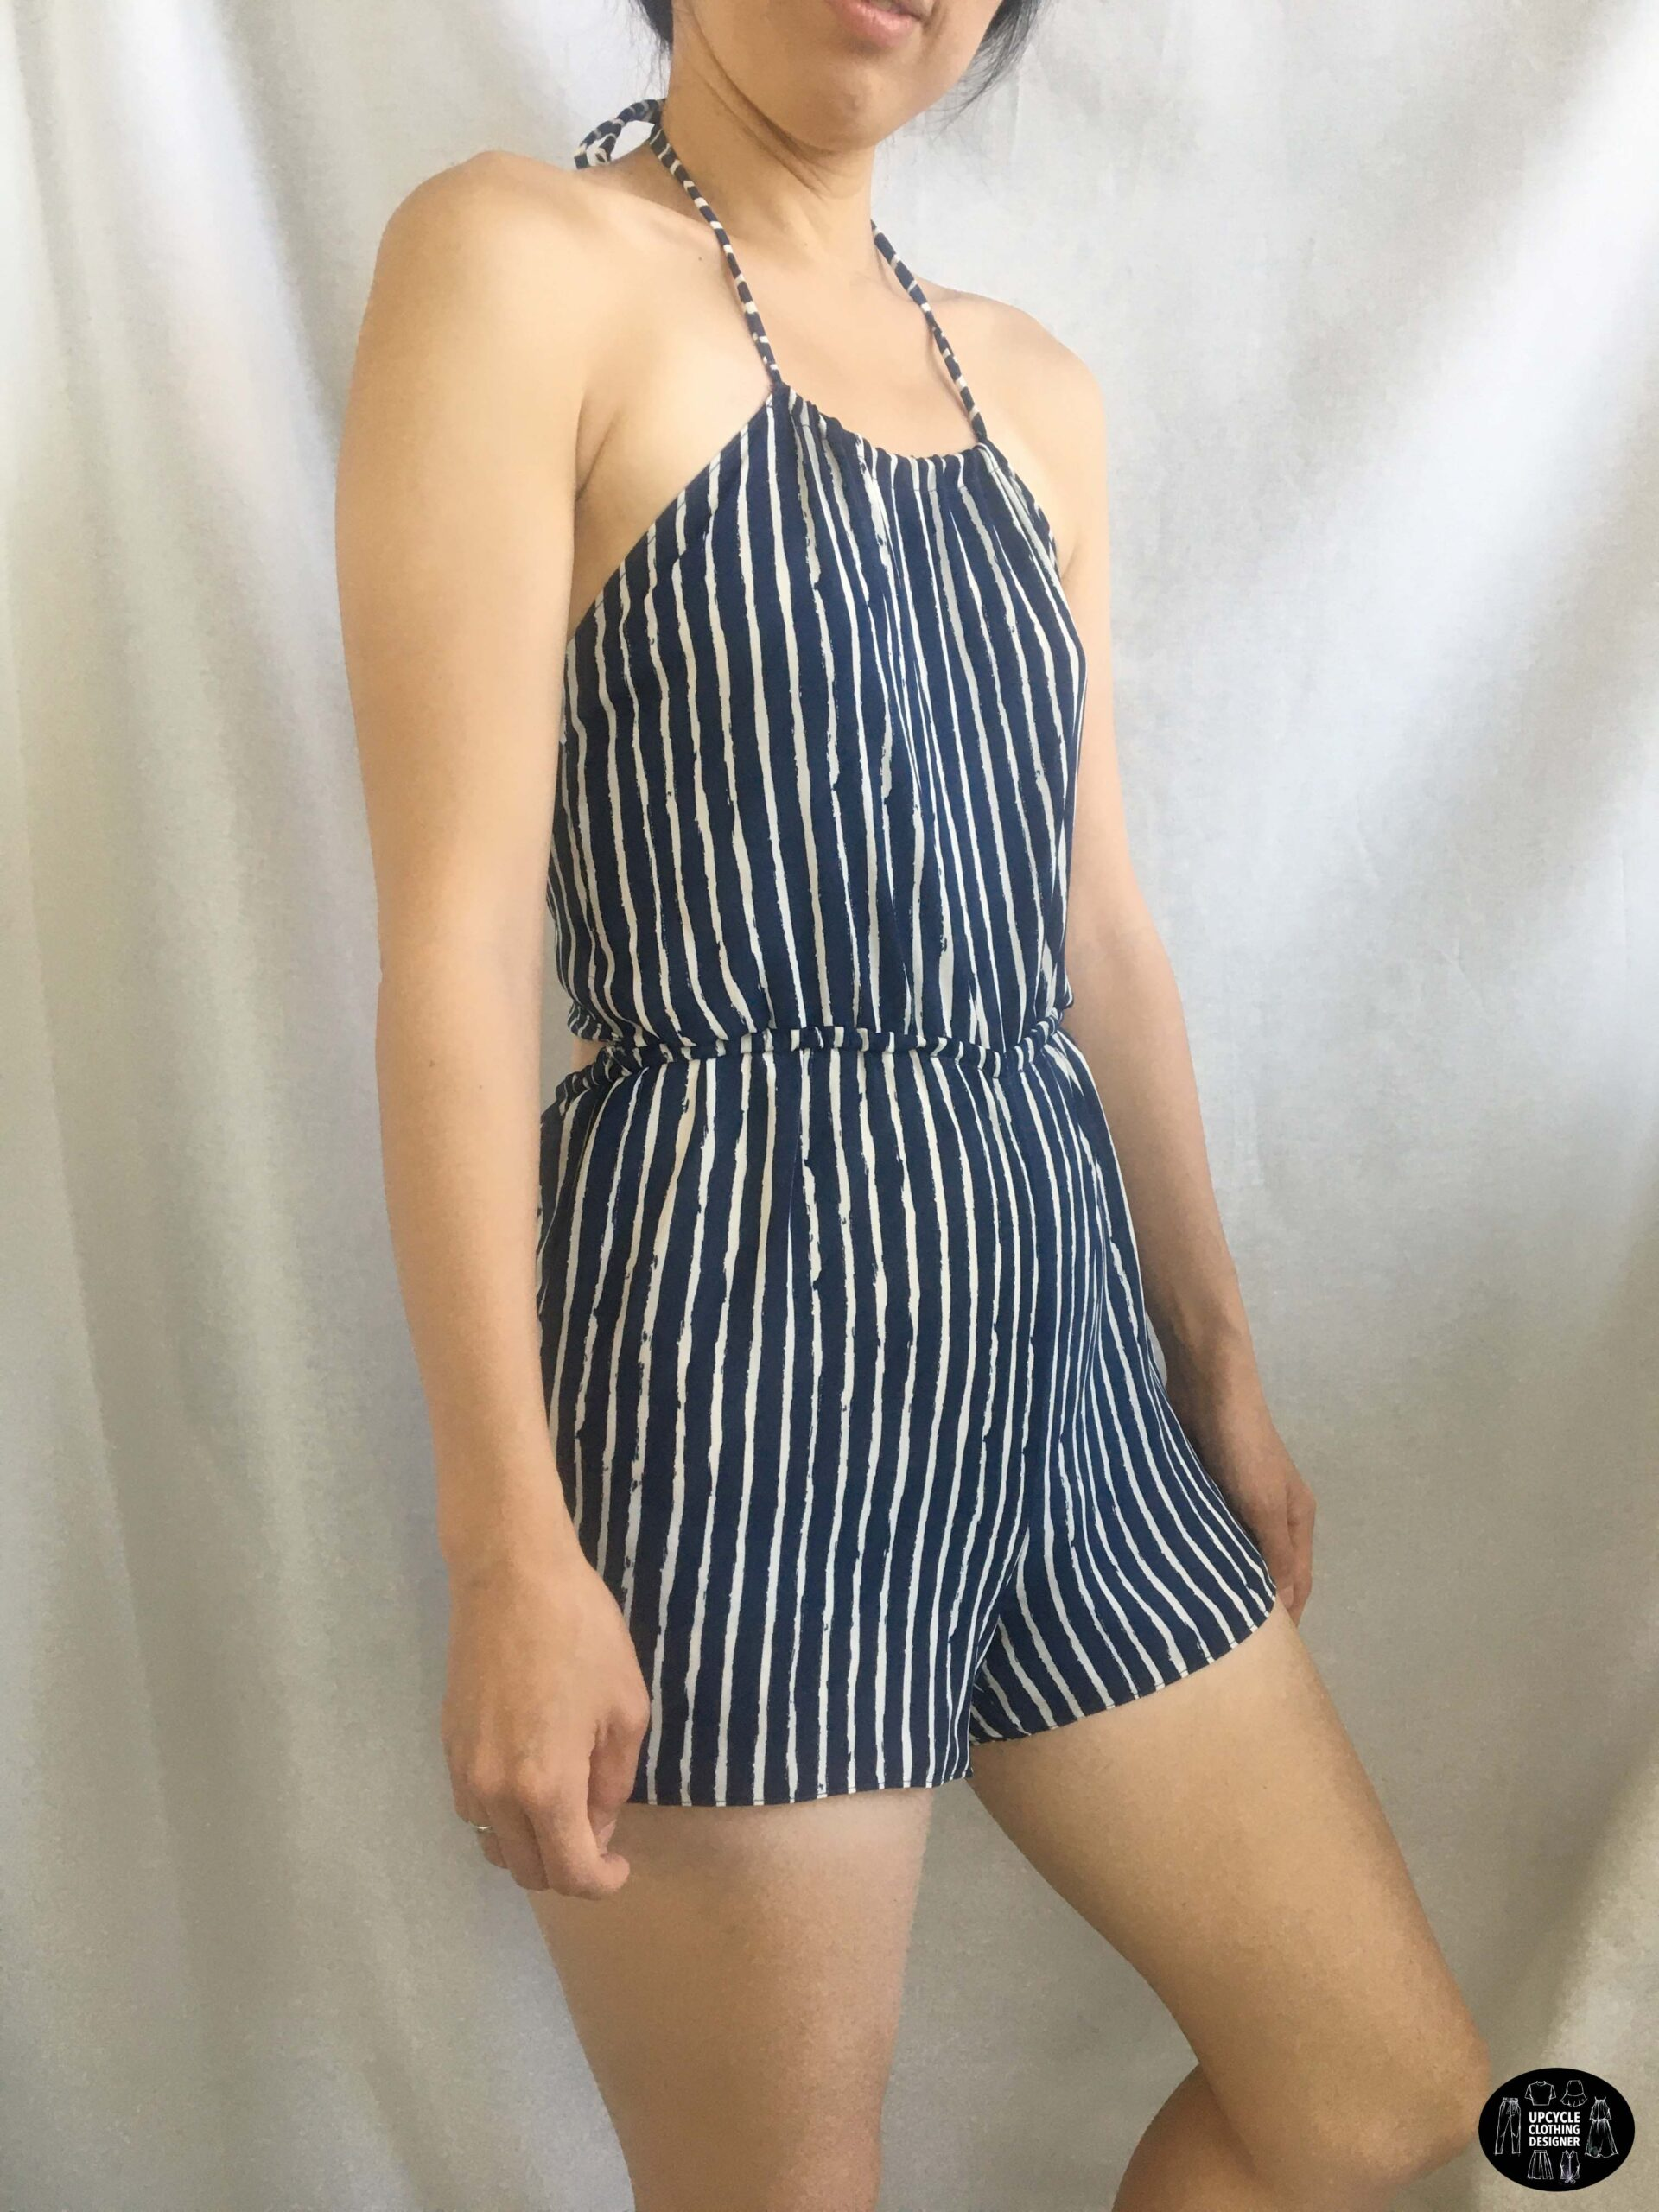 Sideview of the halter romper from dress